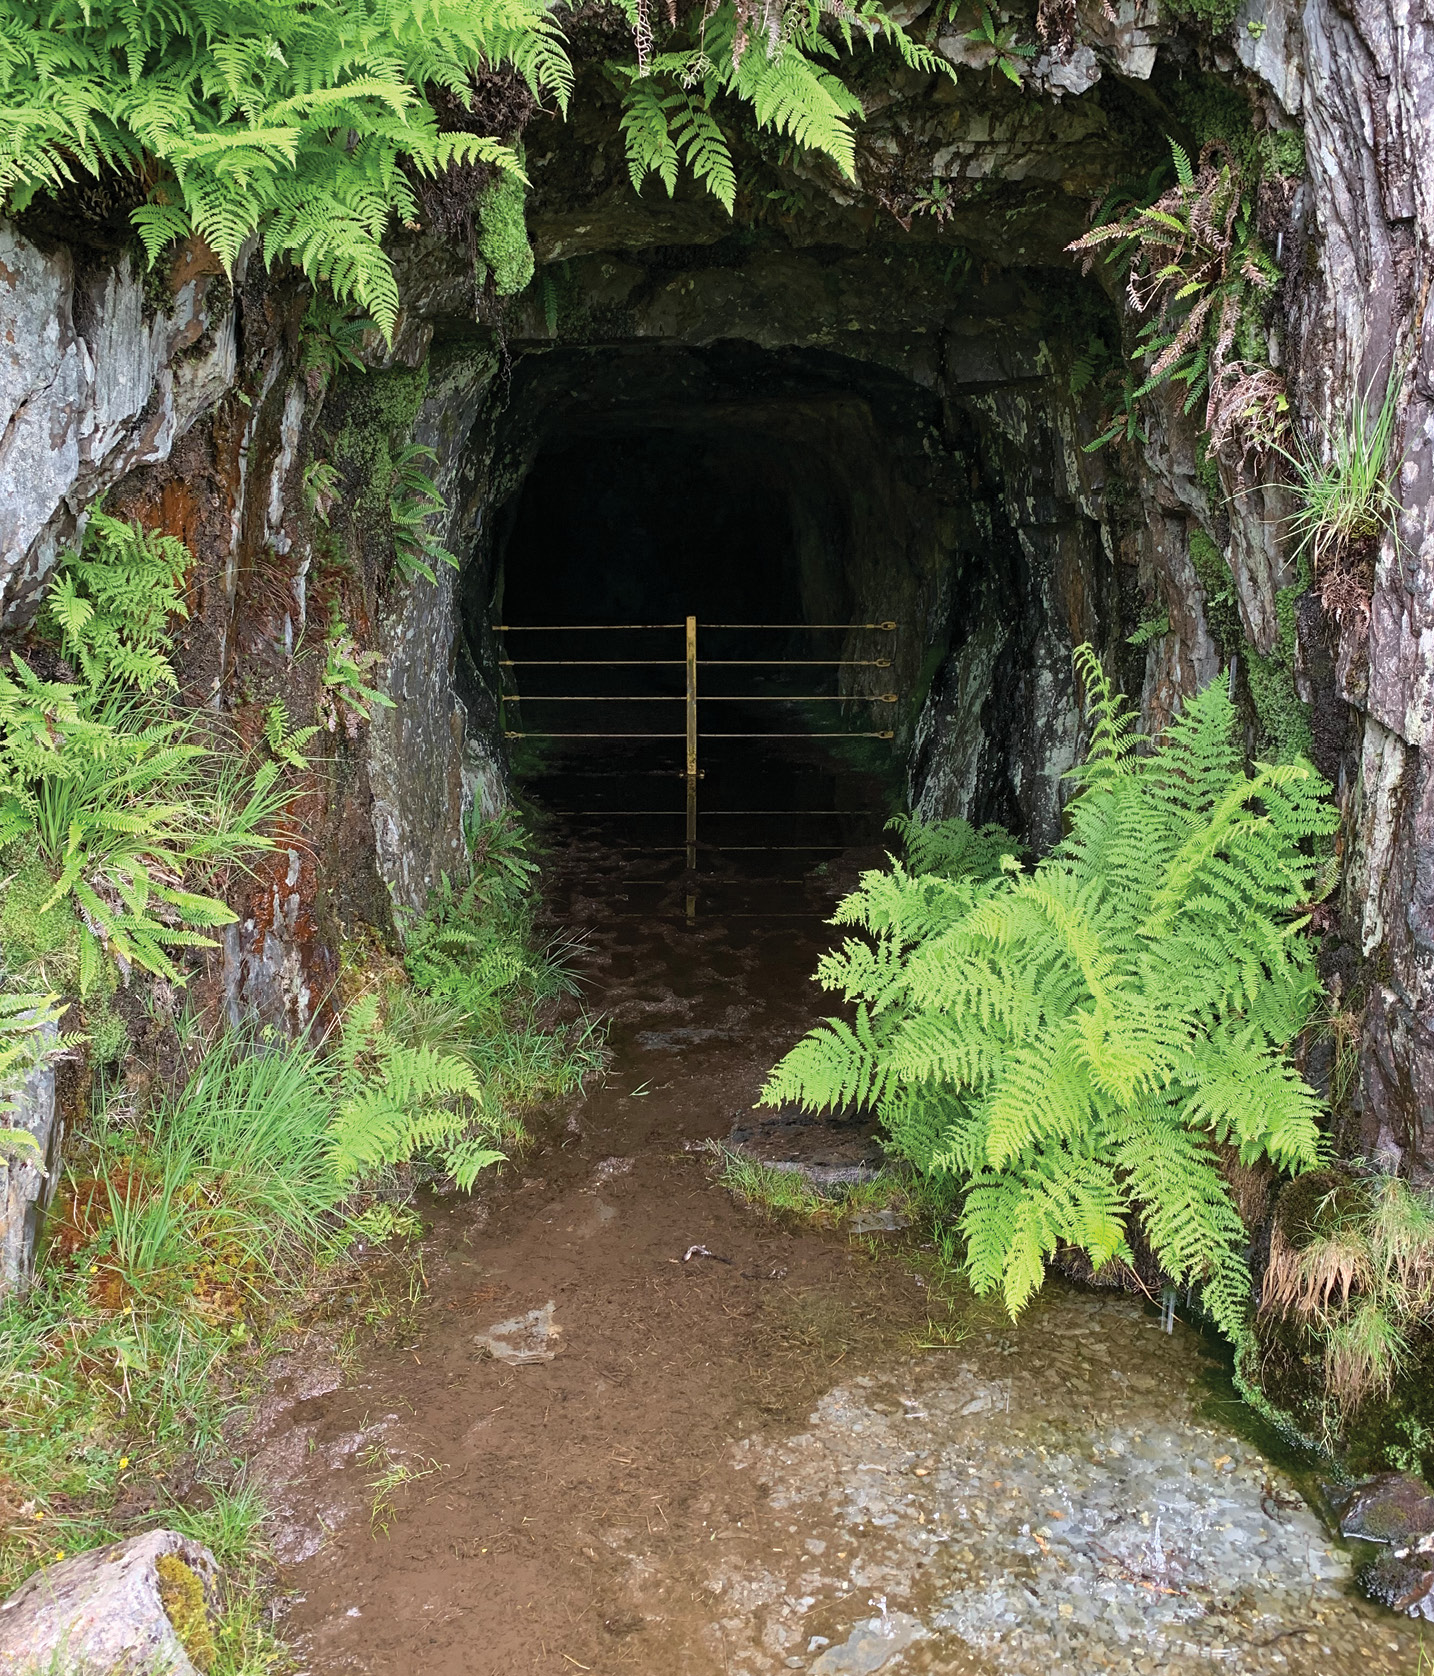 left The entrance to an underground slate cavern at the Prince of Wales quarry.